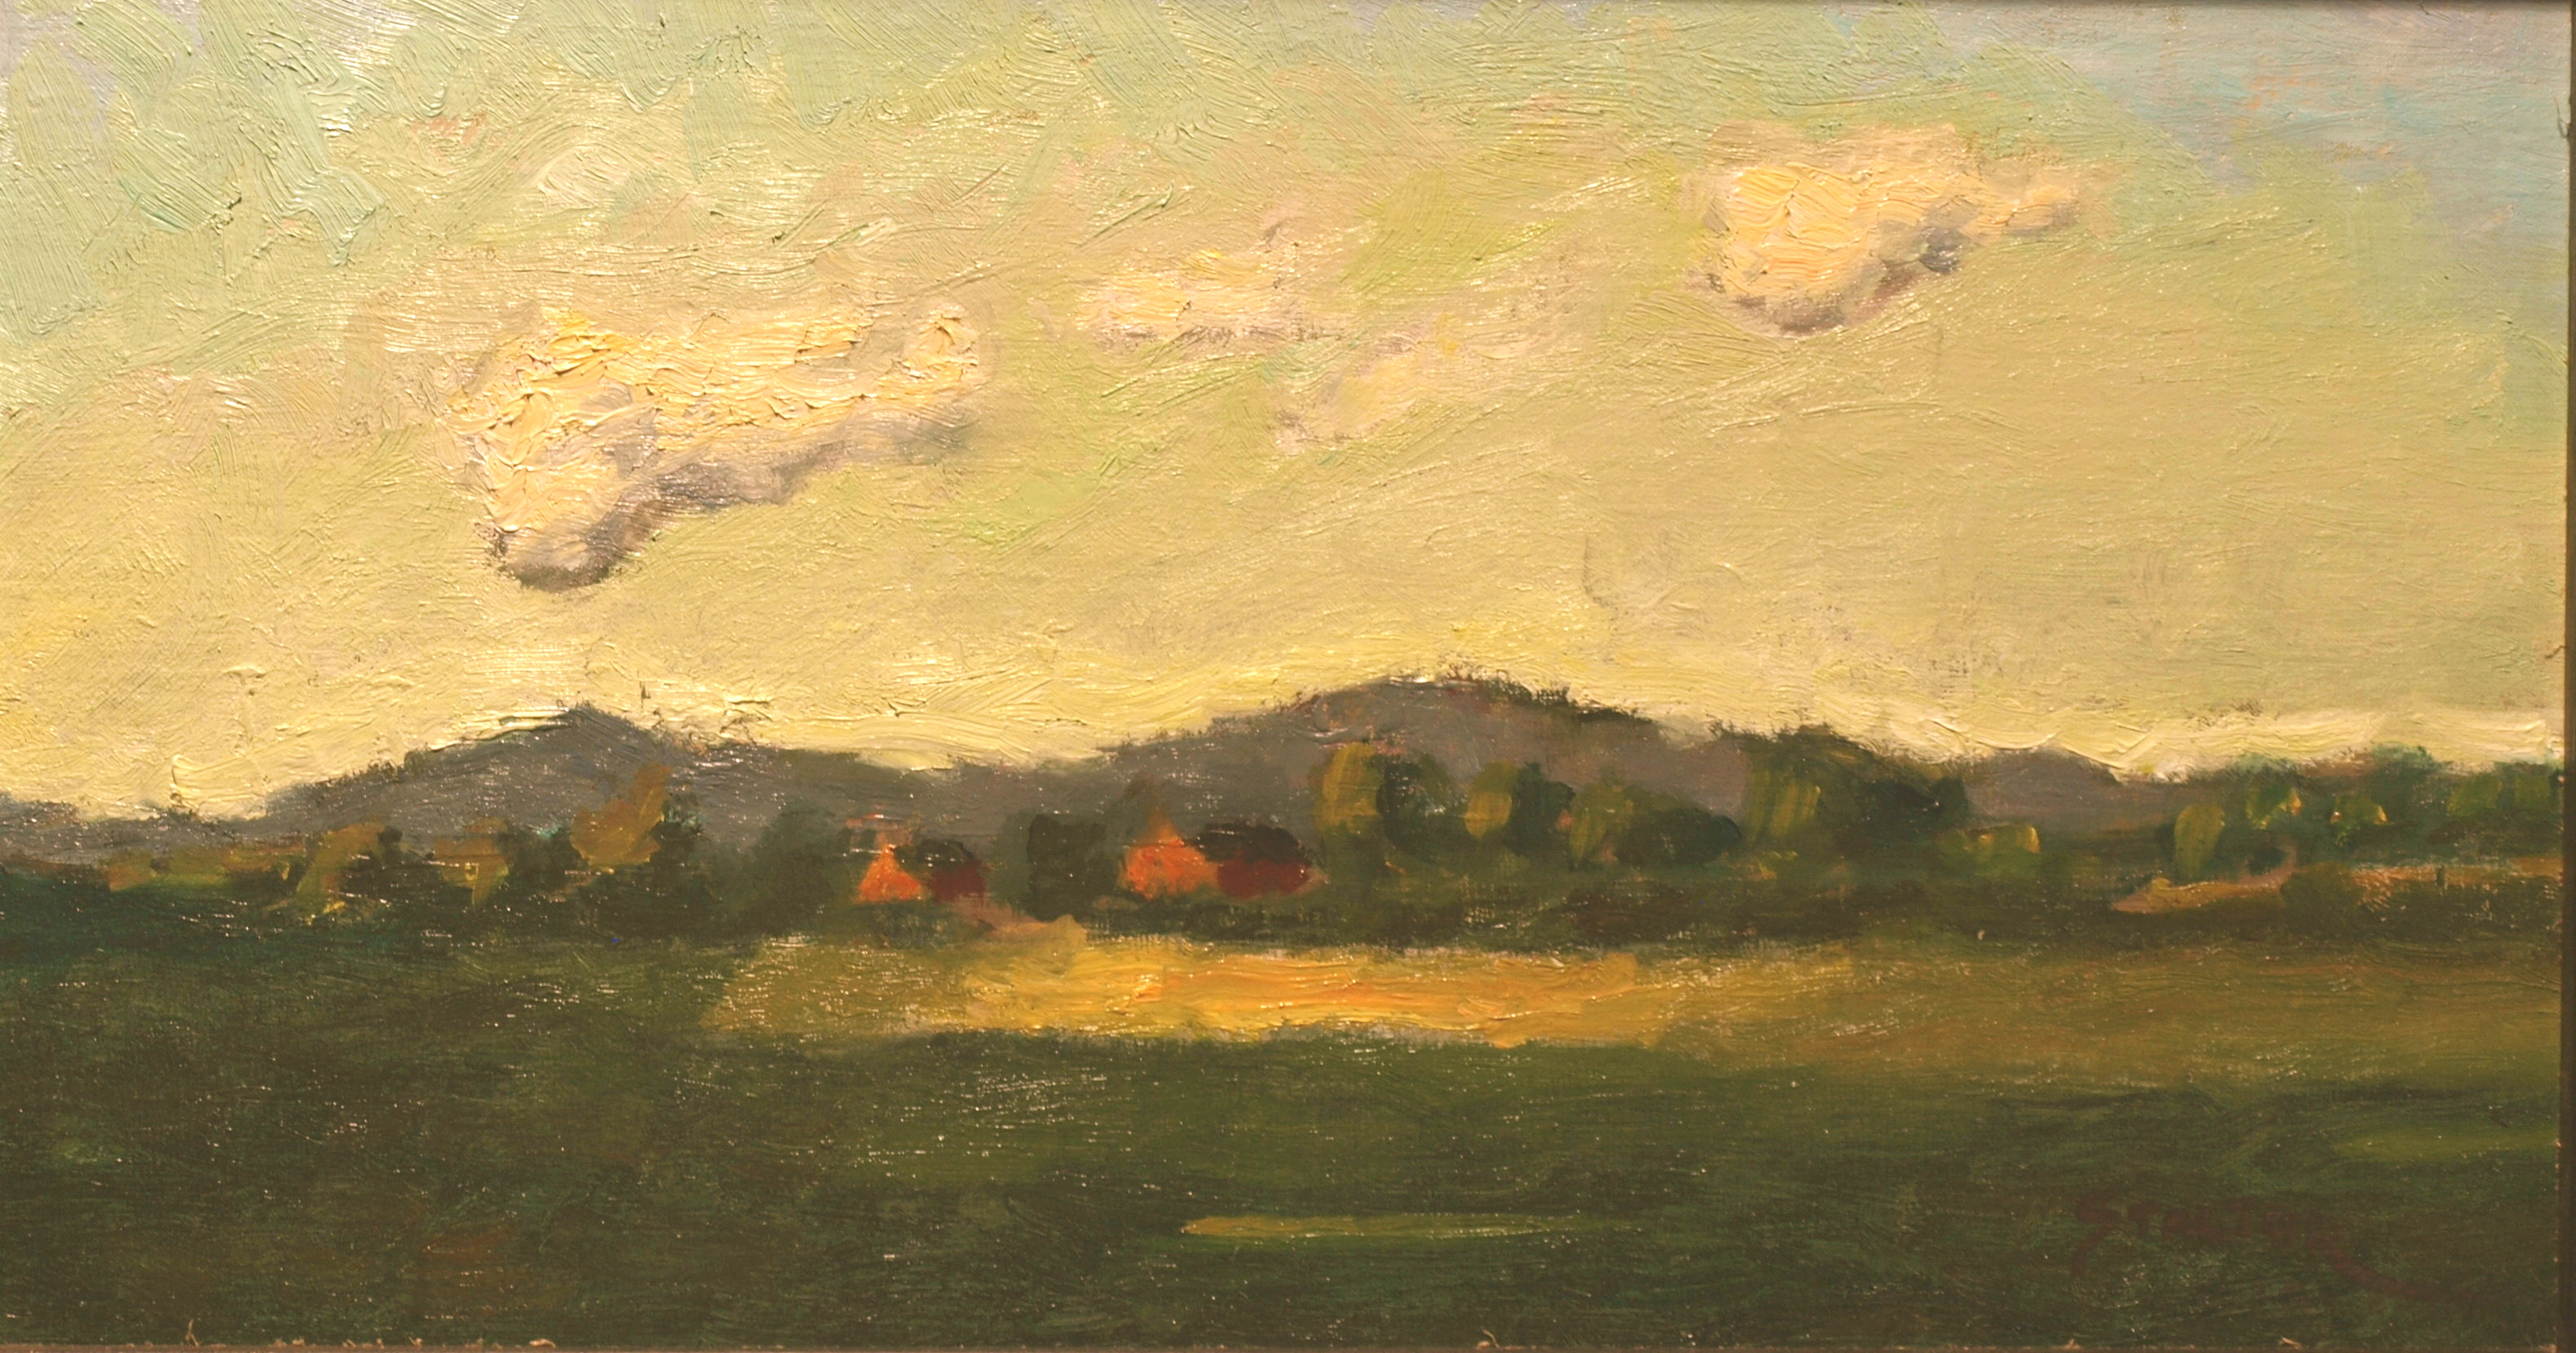 Distant Farm, Oil on Canvas on Panel, 8 x 14 Inches, by Richard Stalter, $225